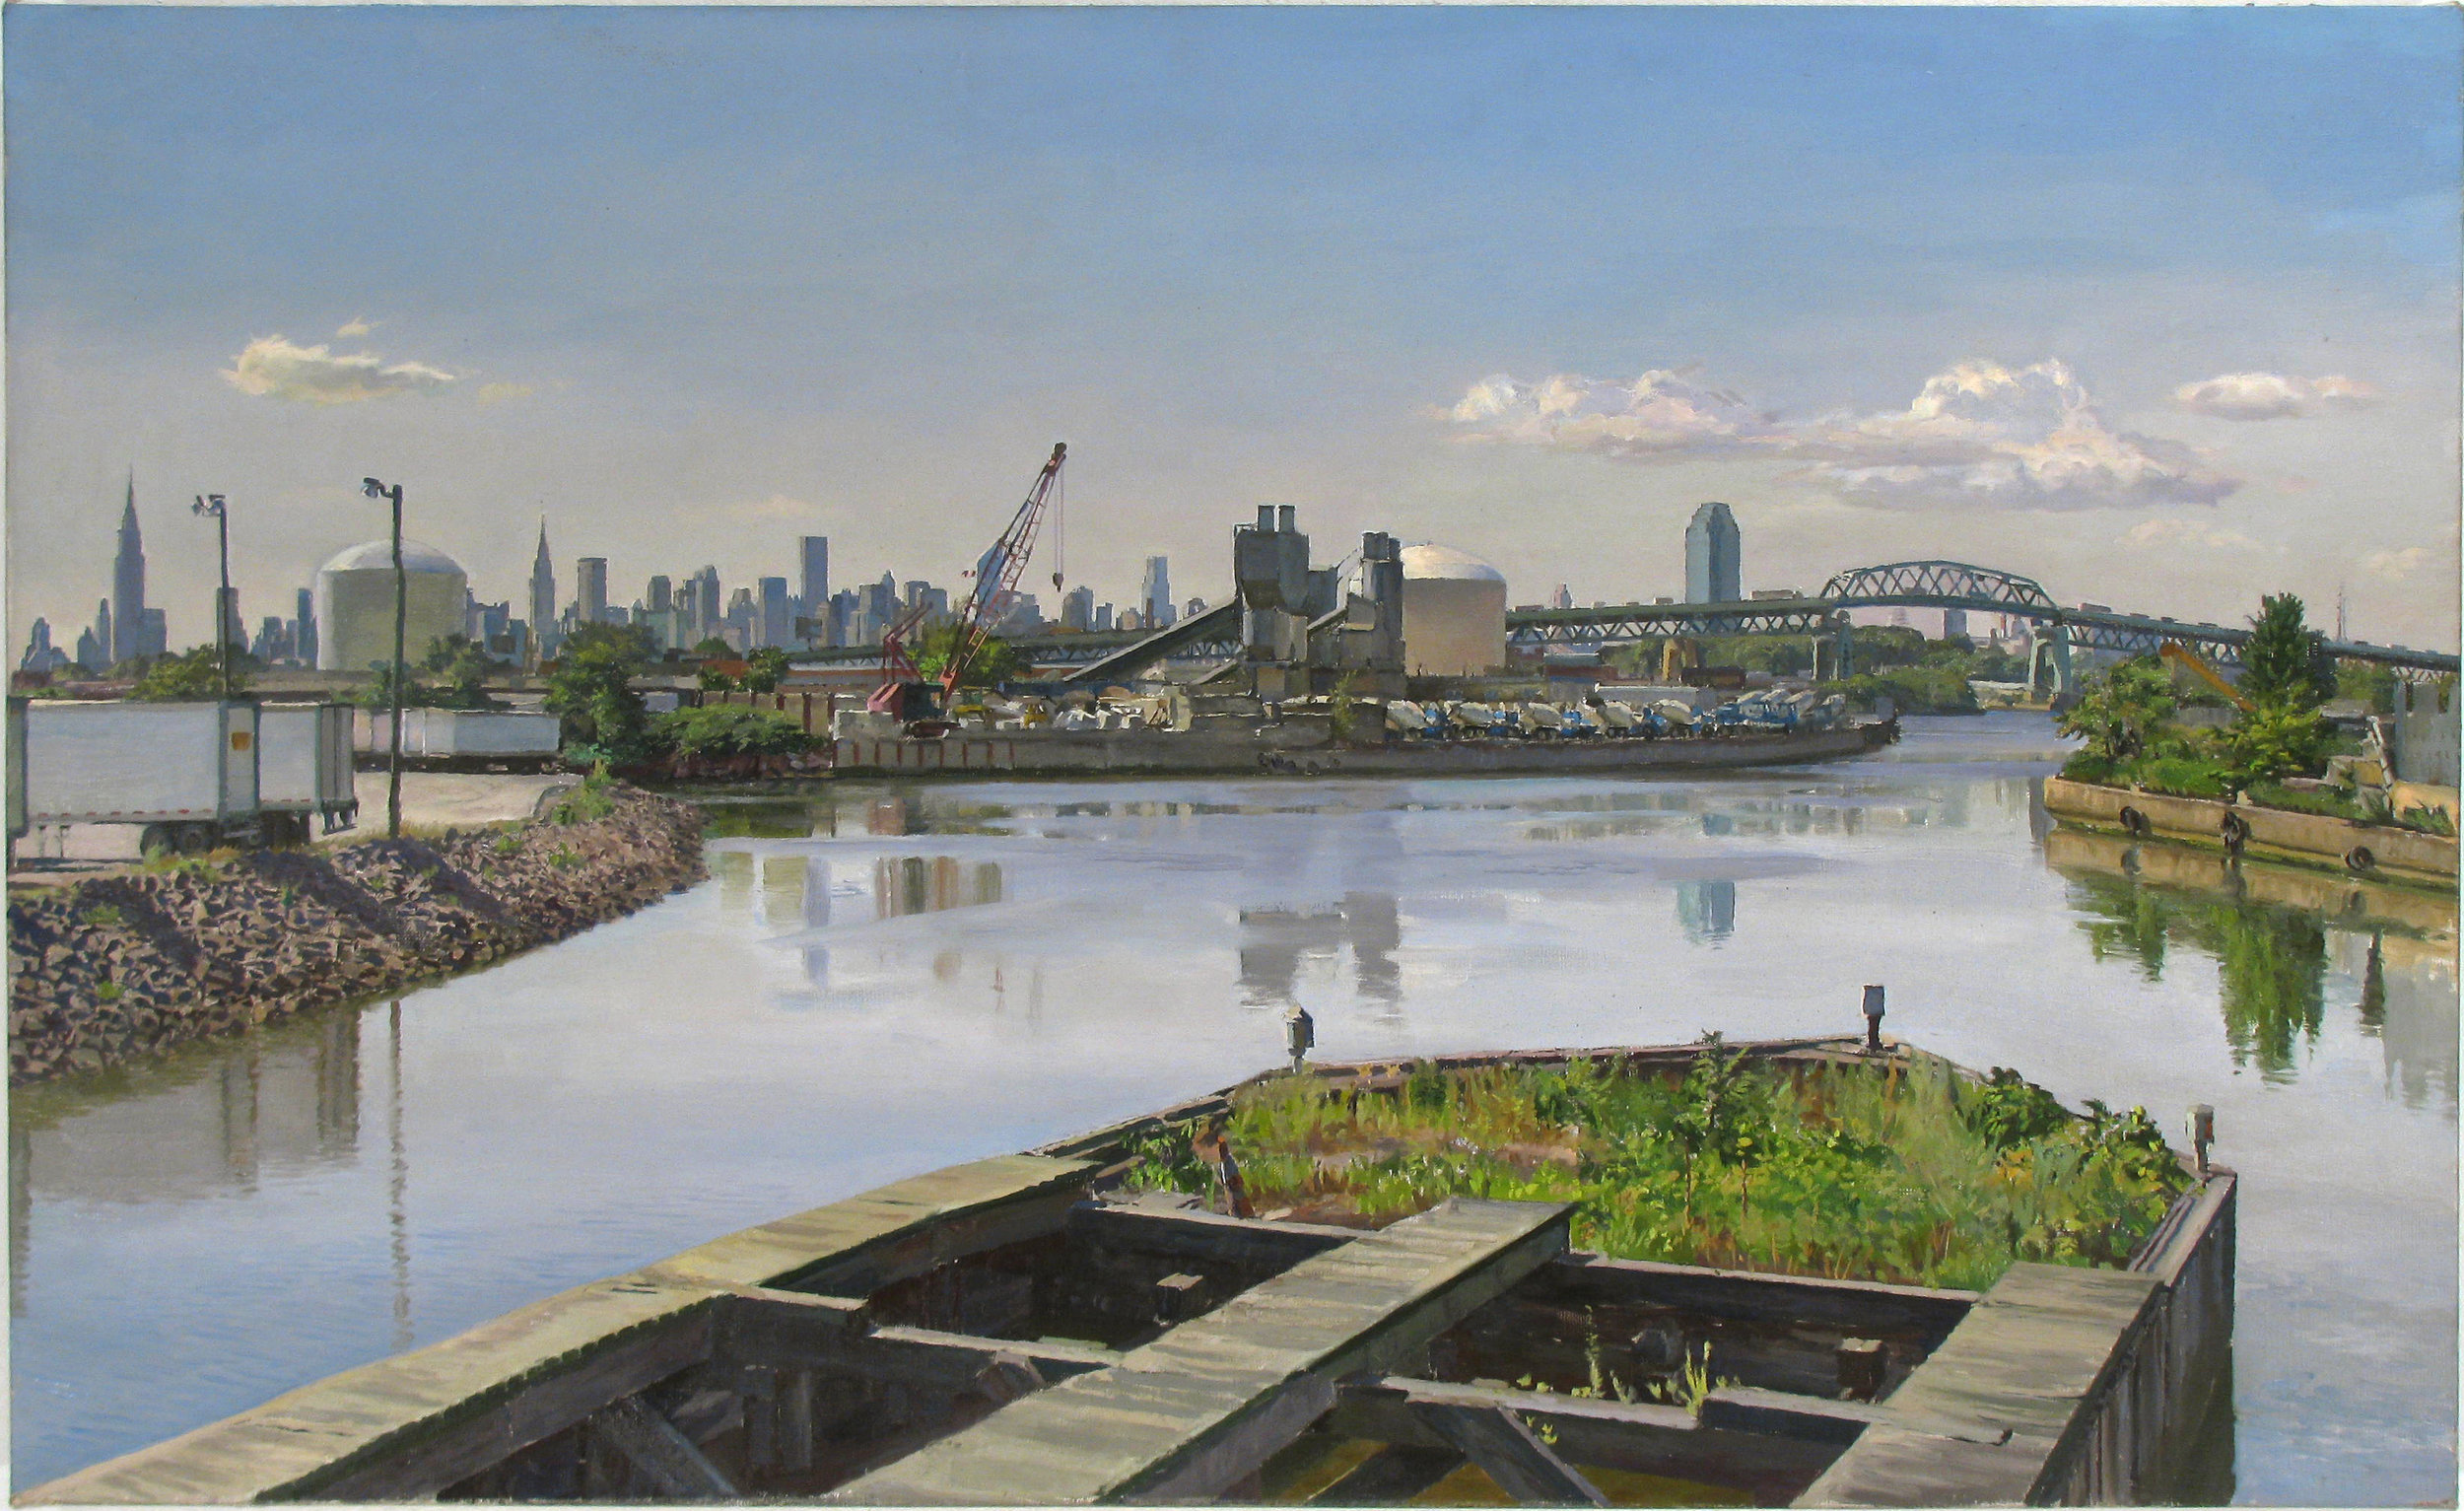 "NEW TOWN oil on linen 22 x 36"" 2011 (sold)"